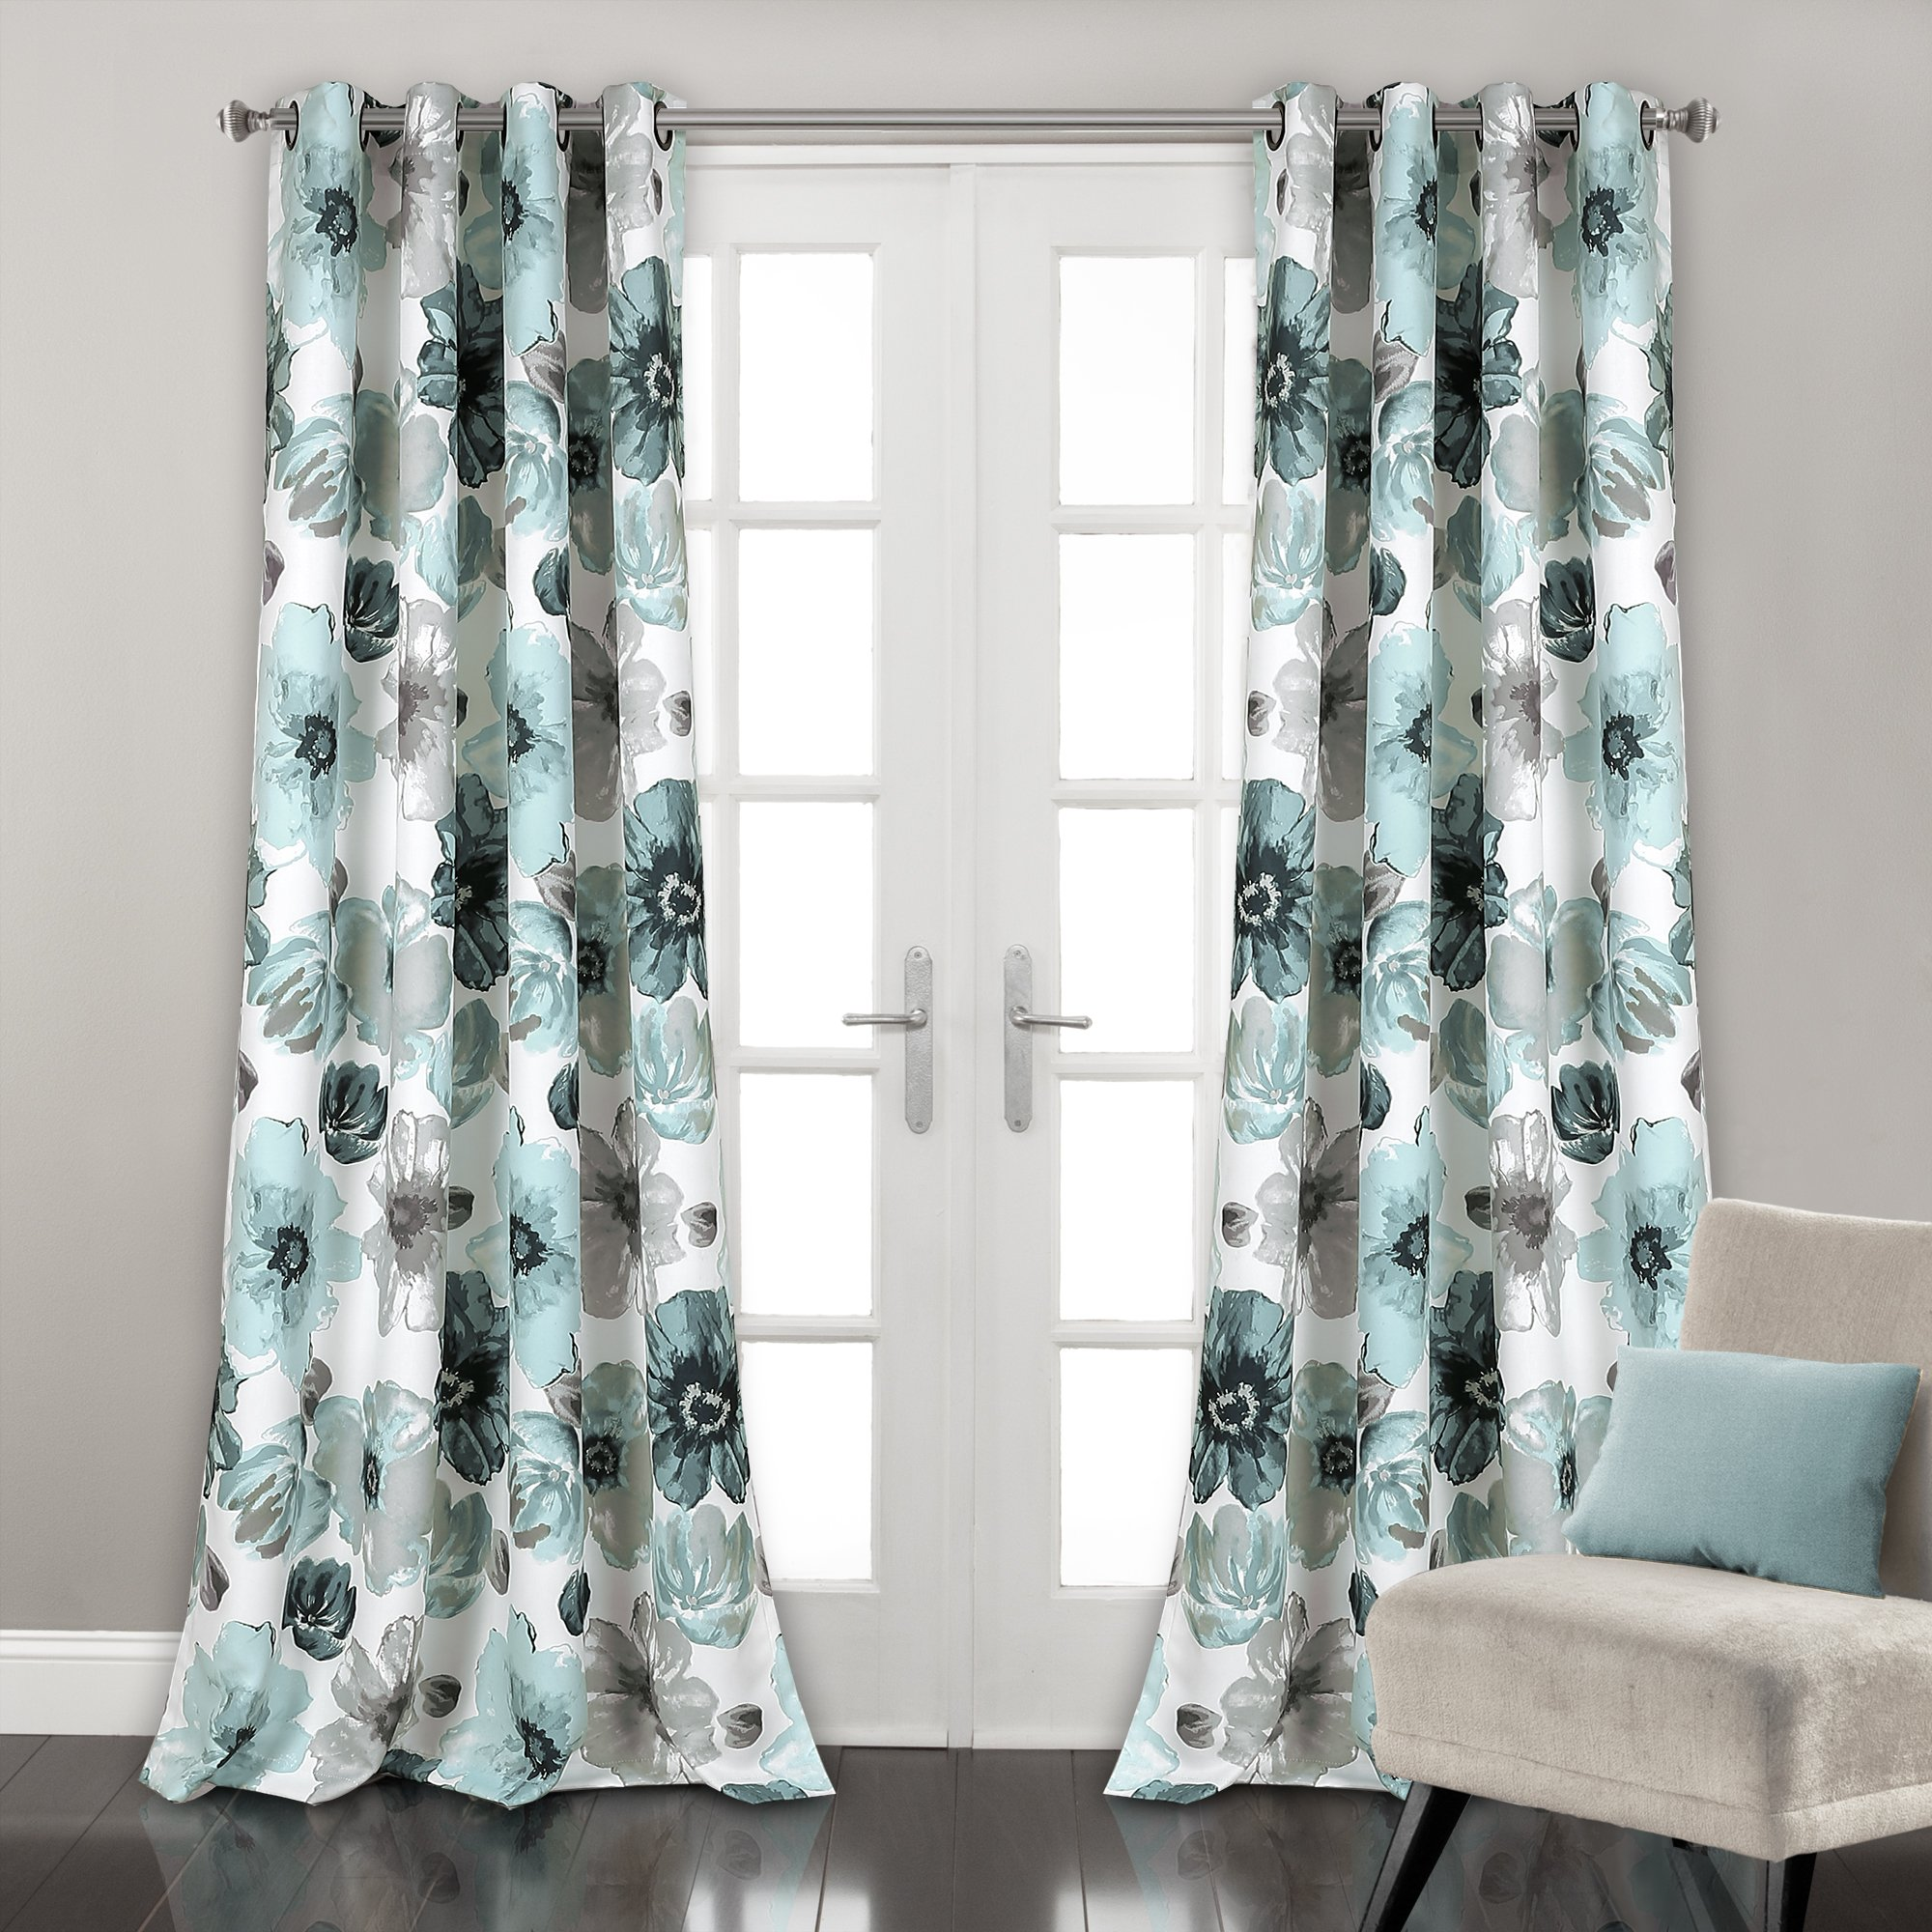 Lush Decor Leah Floral Darkening Window Panel Curtain Set for Living, Dining Room, Bedroom, 84'' L Pair, Blue by Lush Decor